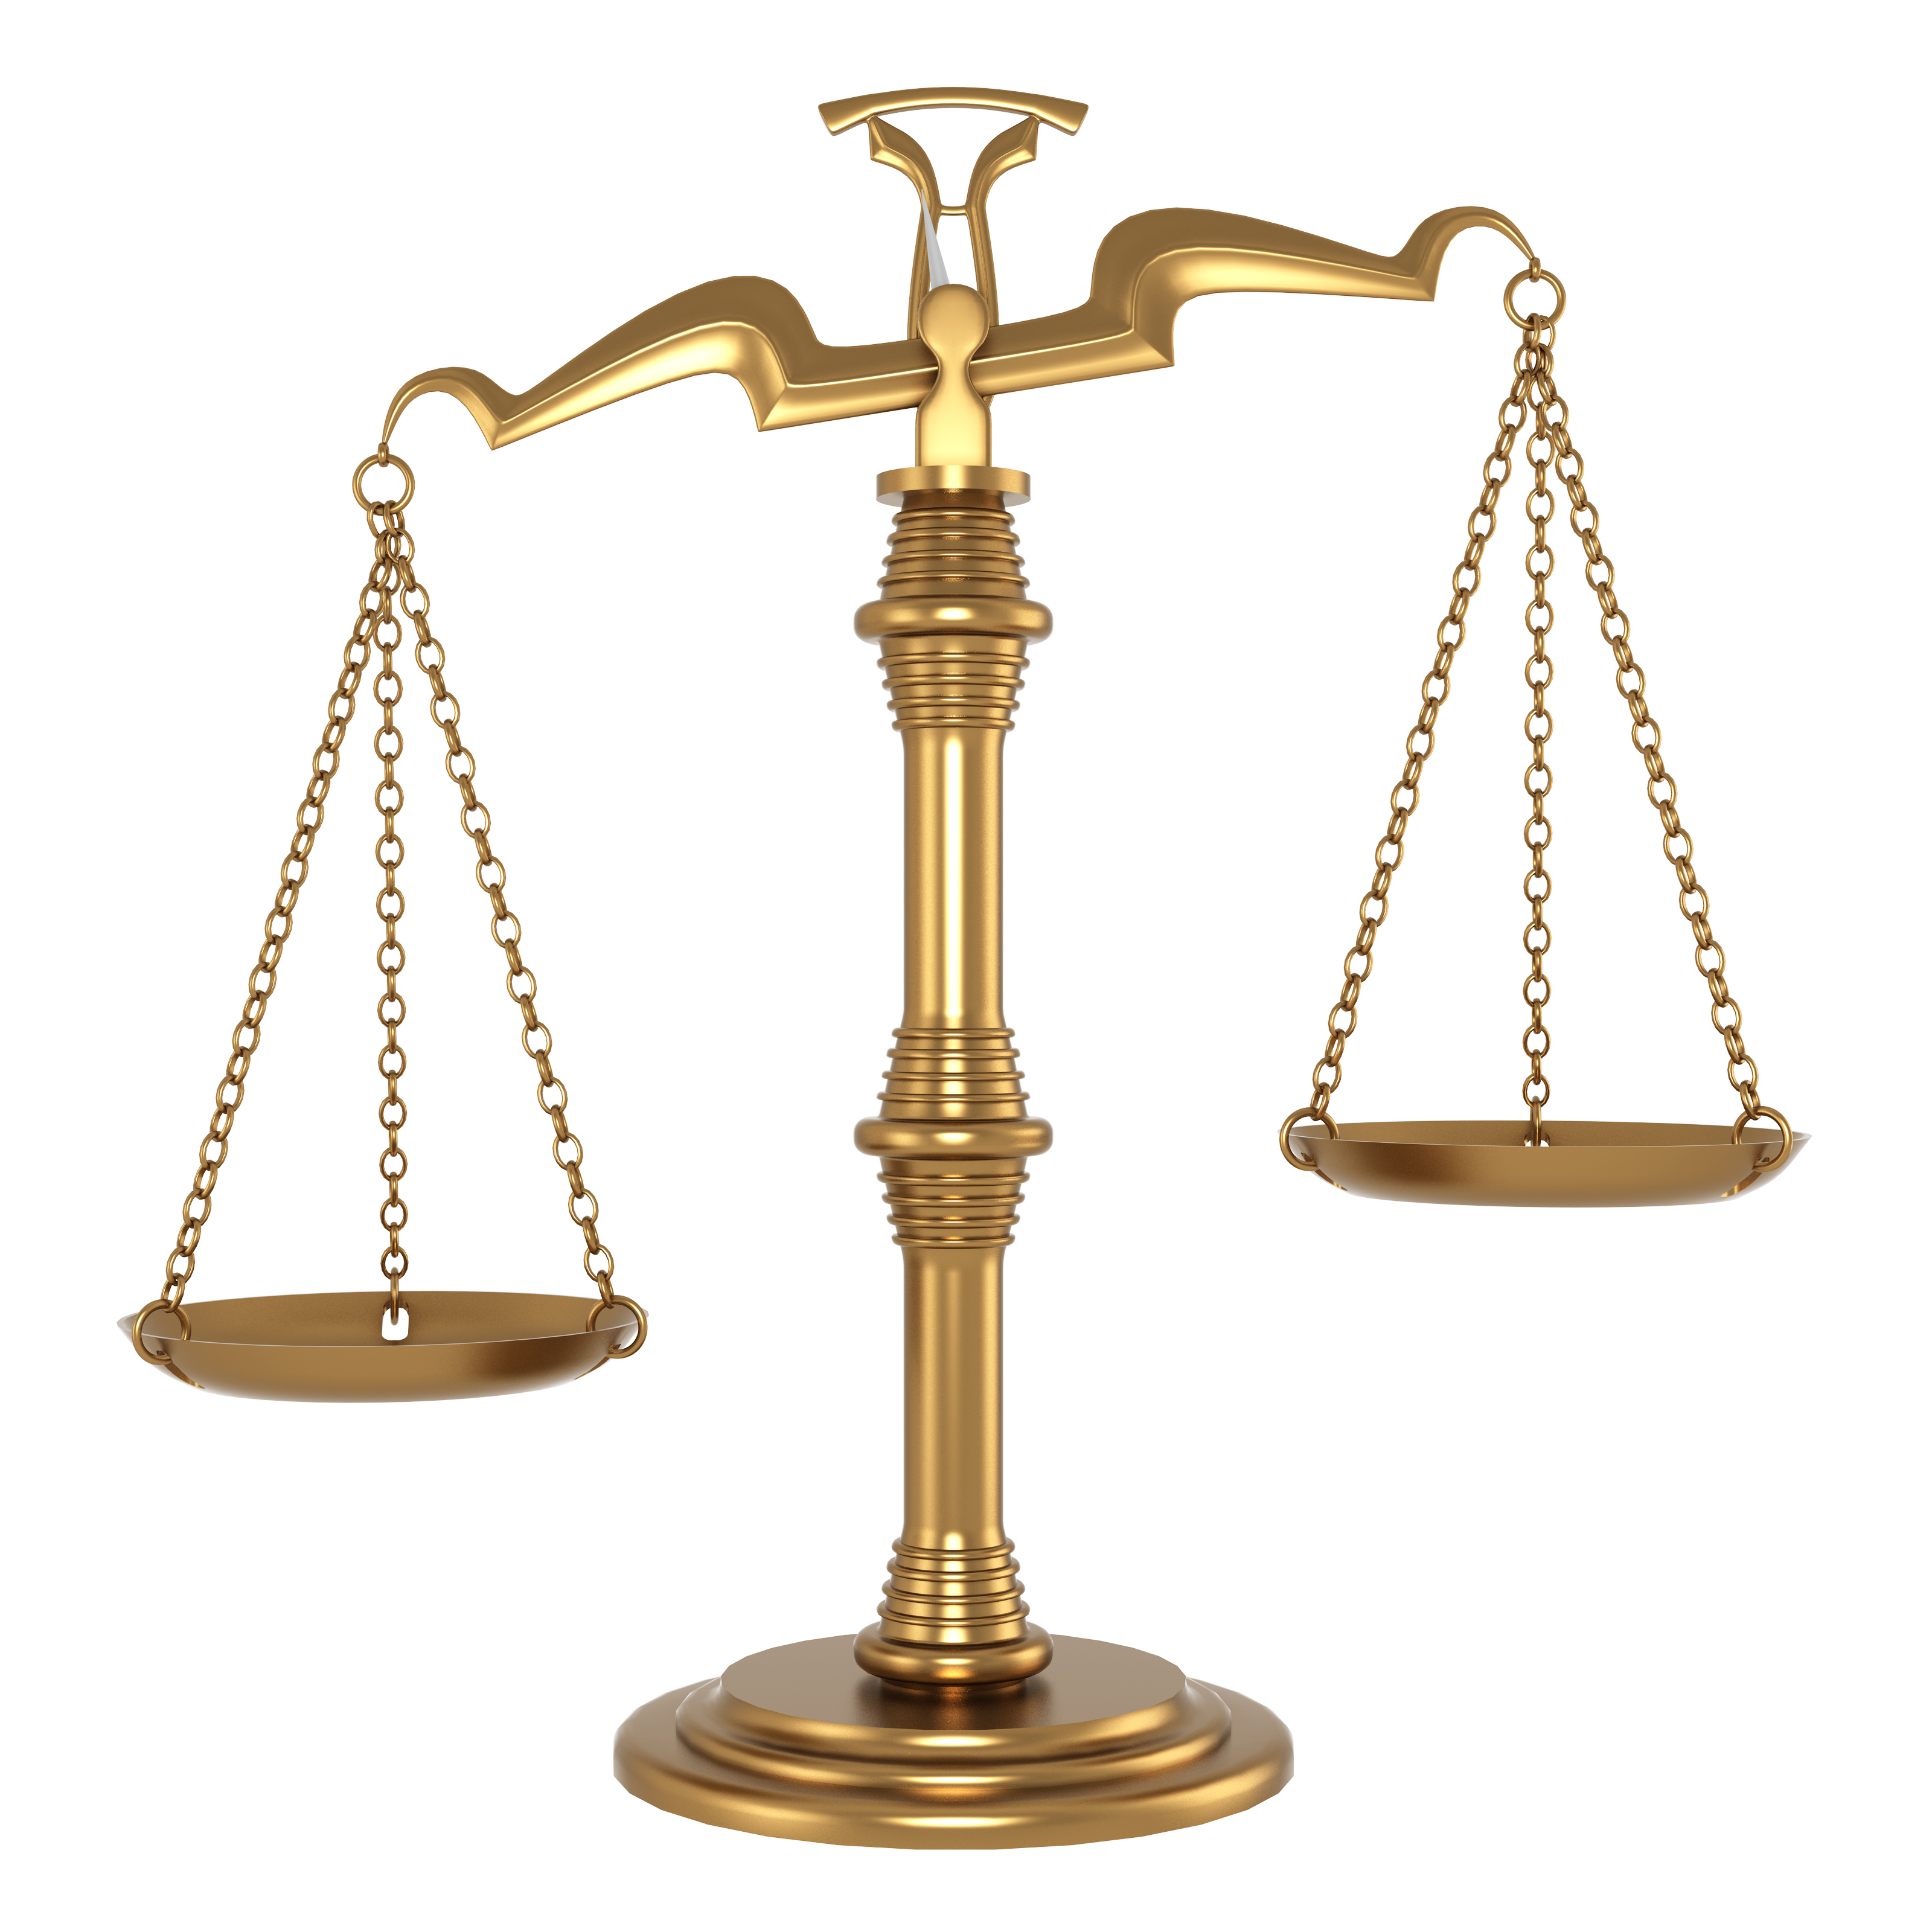 justice scale tattoo cliparts co scales of justice clip art free download scales of justice clip art free